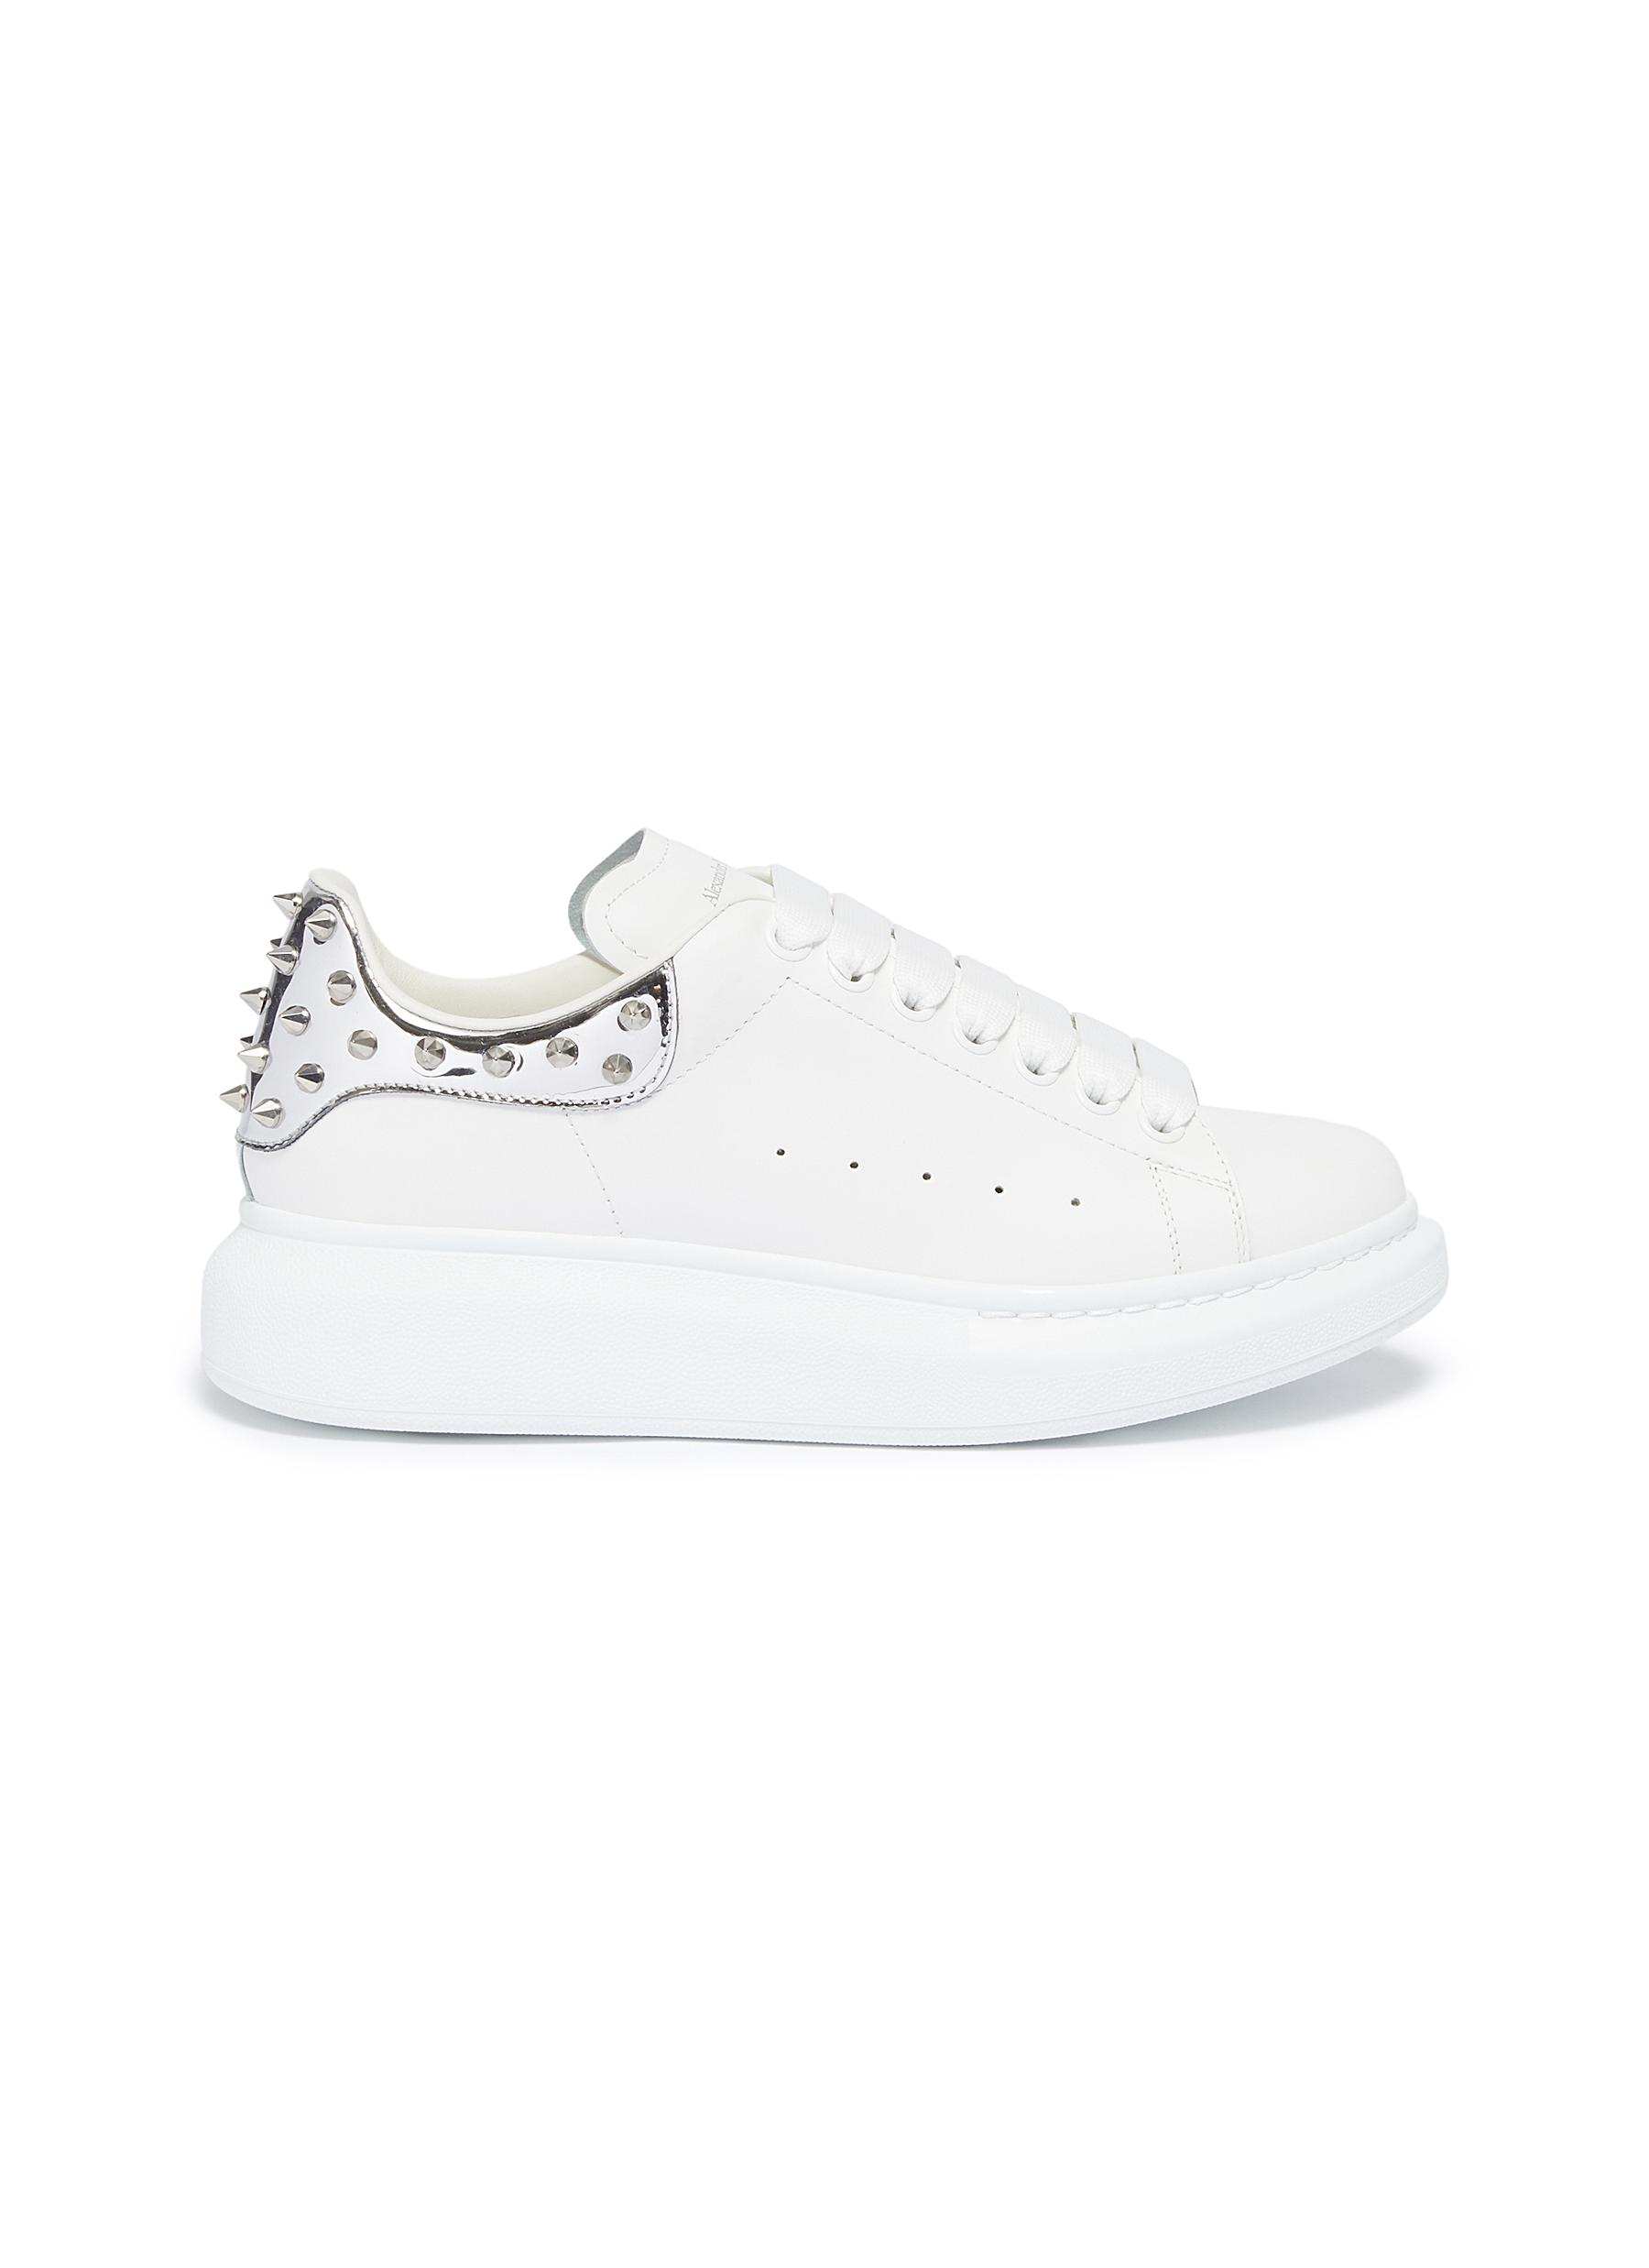 Oversized Sneaker in leather with stud mirror collar by Alexander Mcqueen